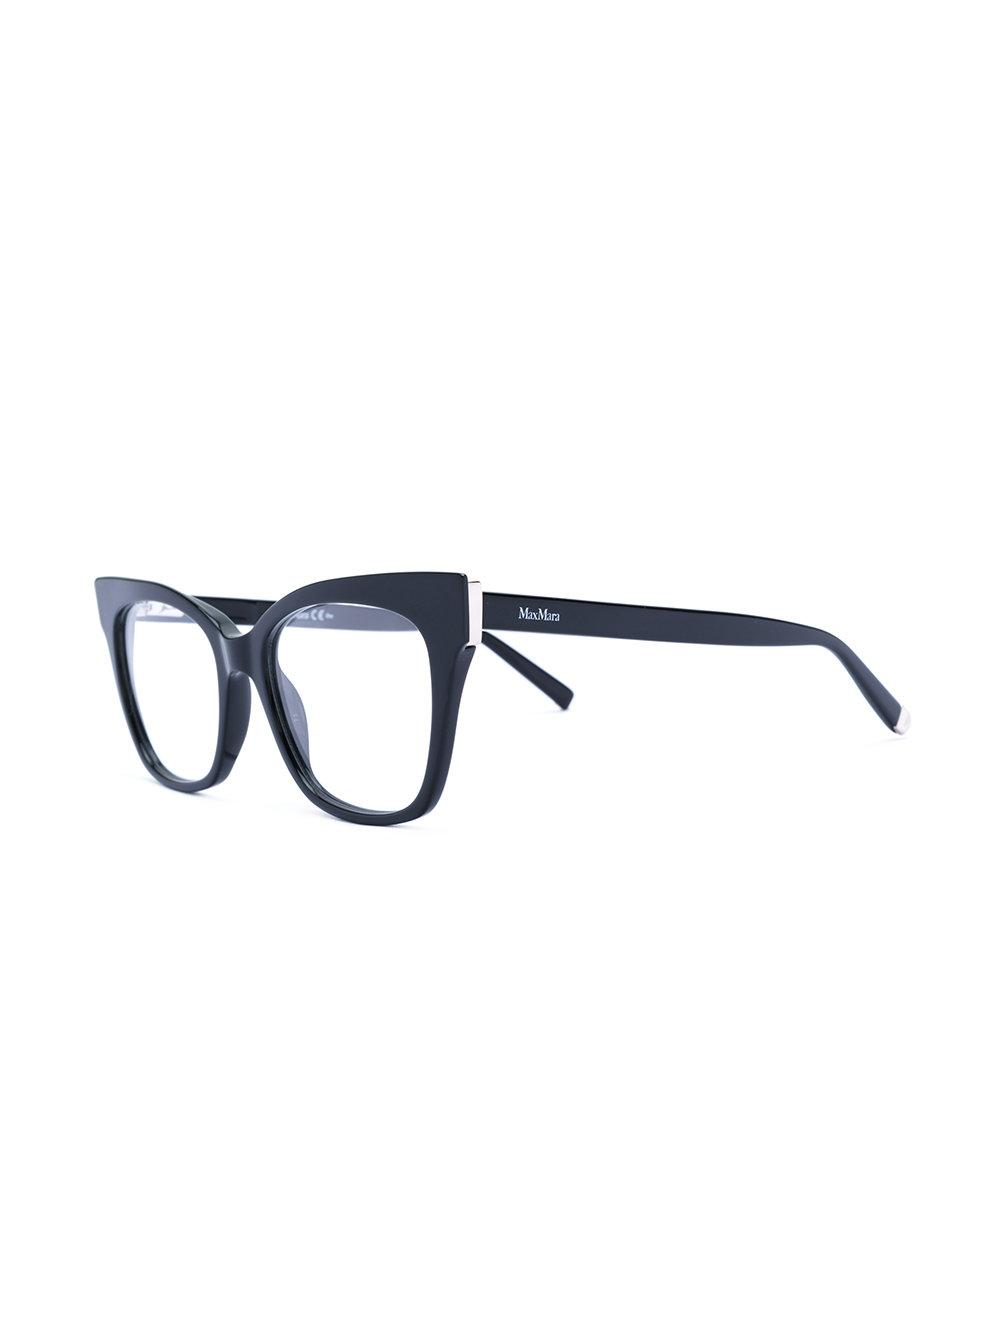 dccc98cd0bd5 Max Mara Cat-eye Optical Glasses in Black - Lyst